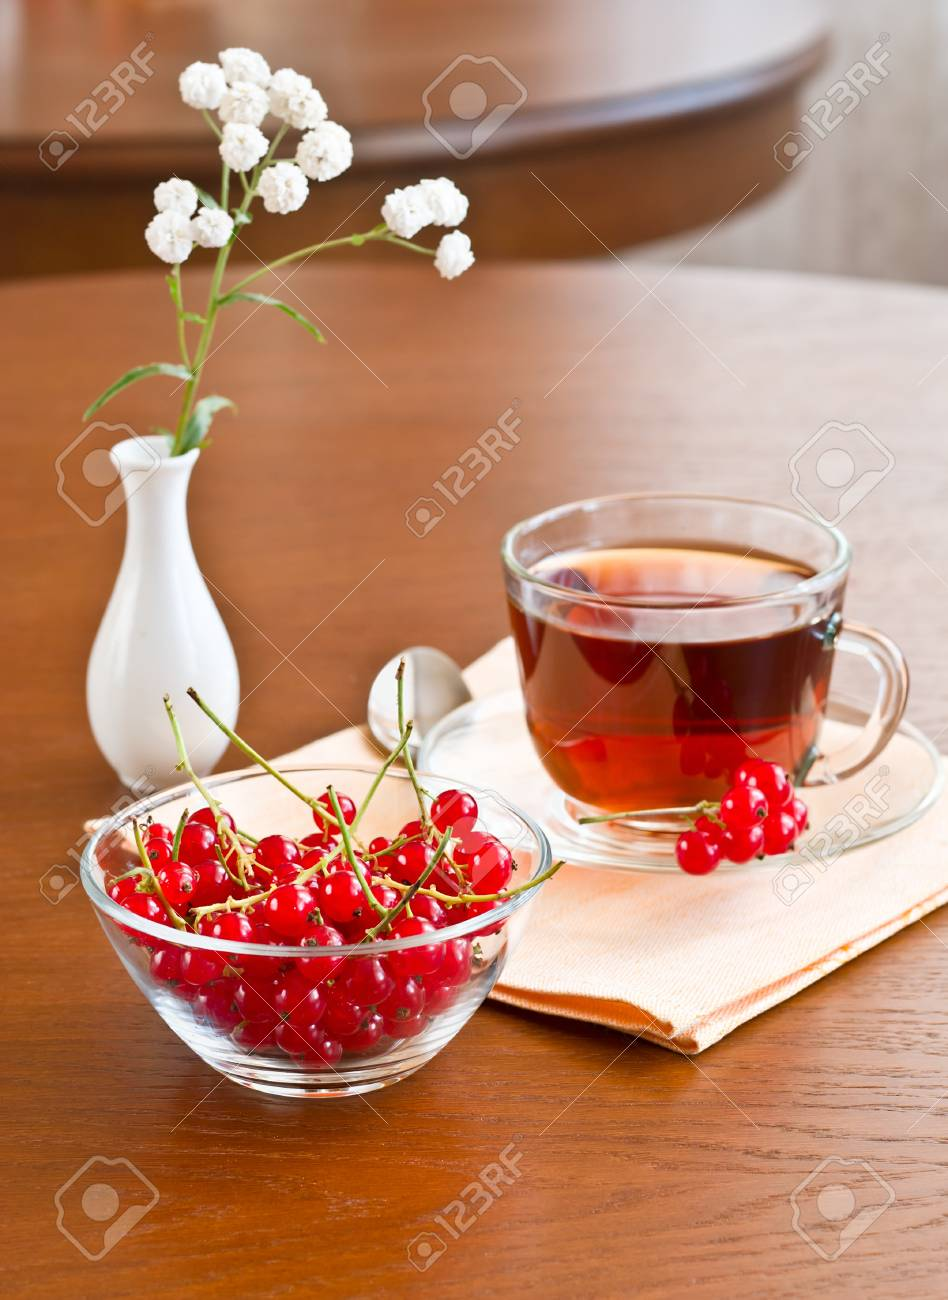 Glass tea cup and redcurrants in bowl on wooden table Stock Photo - 11852542